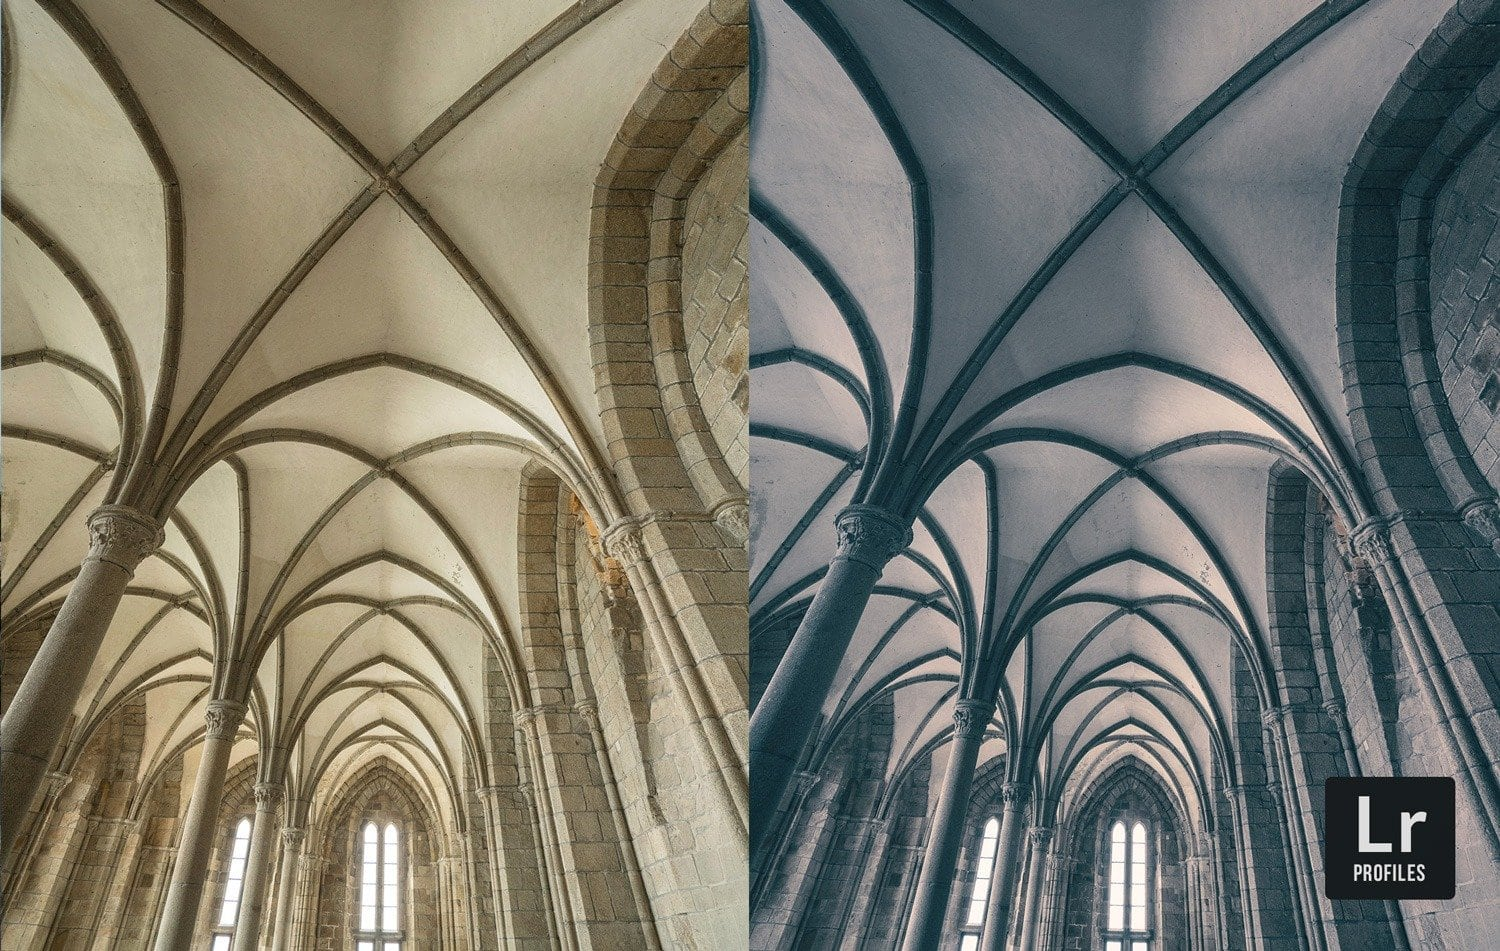 Free-Lightroom-Profile-Castle-Cool-Before-After-Presetpro.com